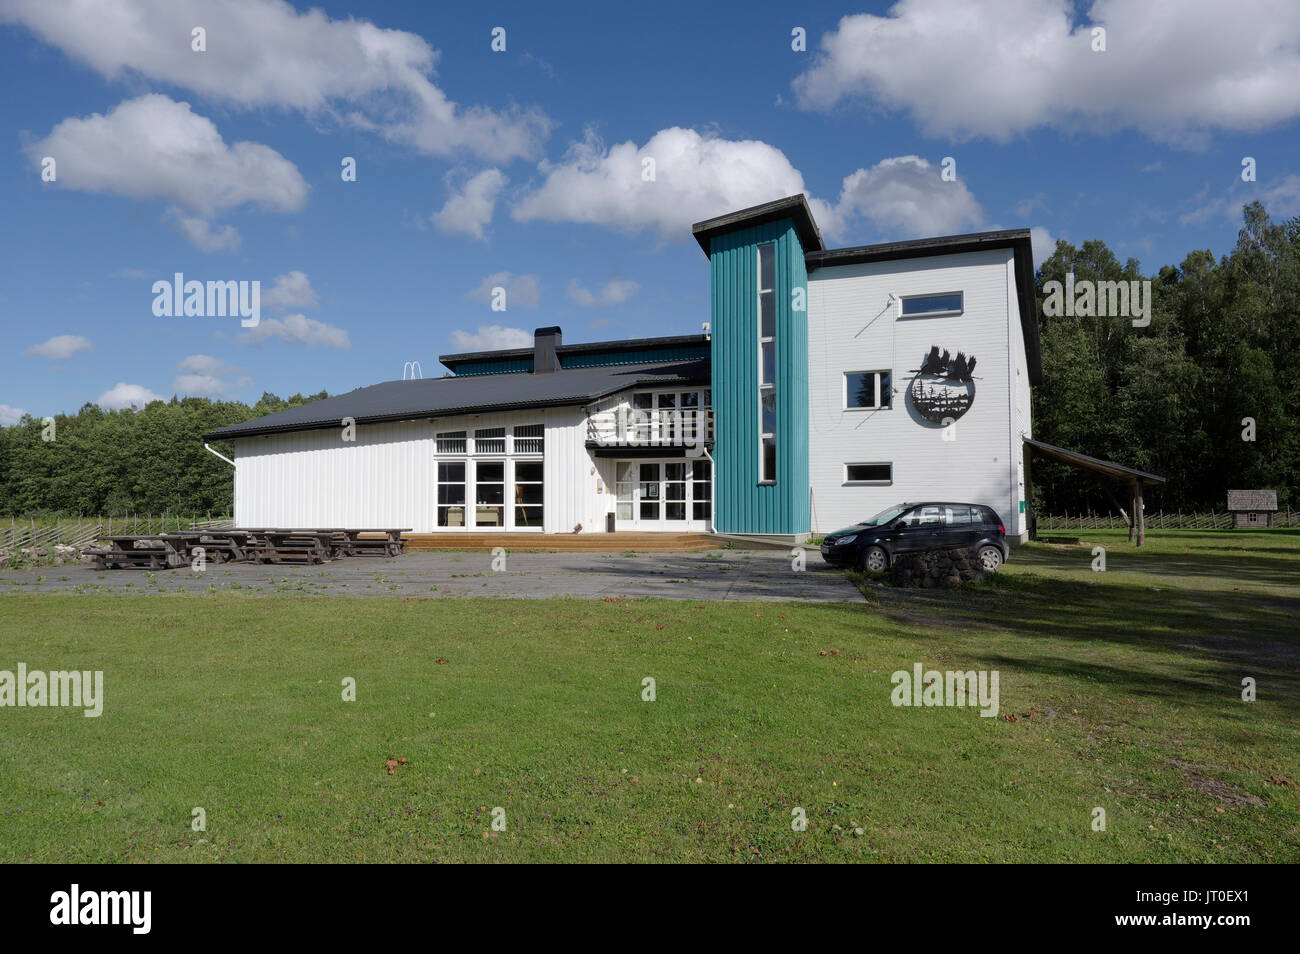 Soomaa National Park Visitor Centre. Estonia, Baltic States. 6th August 2017 Stock Photo